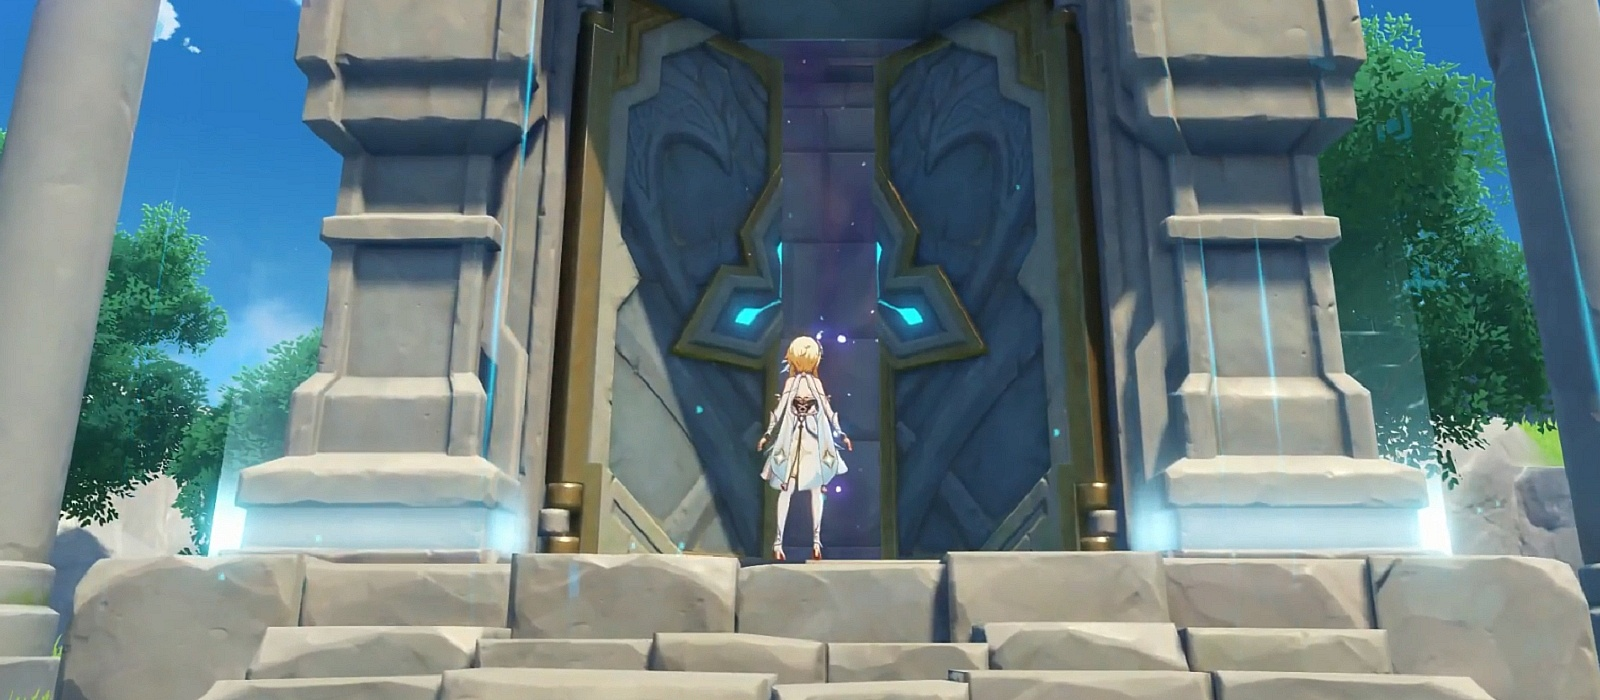 All About Will Dungeons (Cecilia's Garden, Liangshan Labyrinth) in Genshin Impact: How To Find, How To Unlock, Reward Schedule